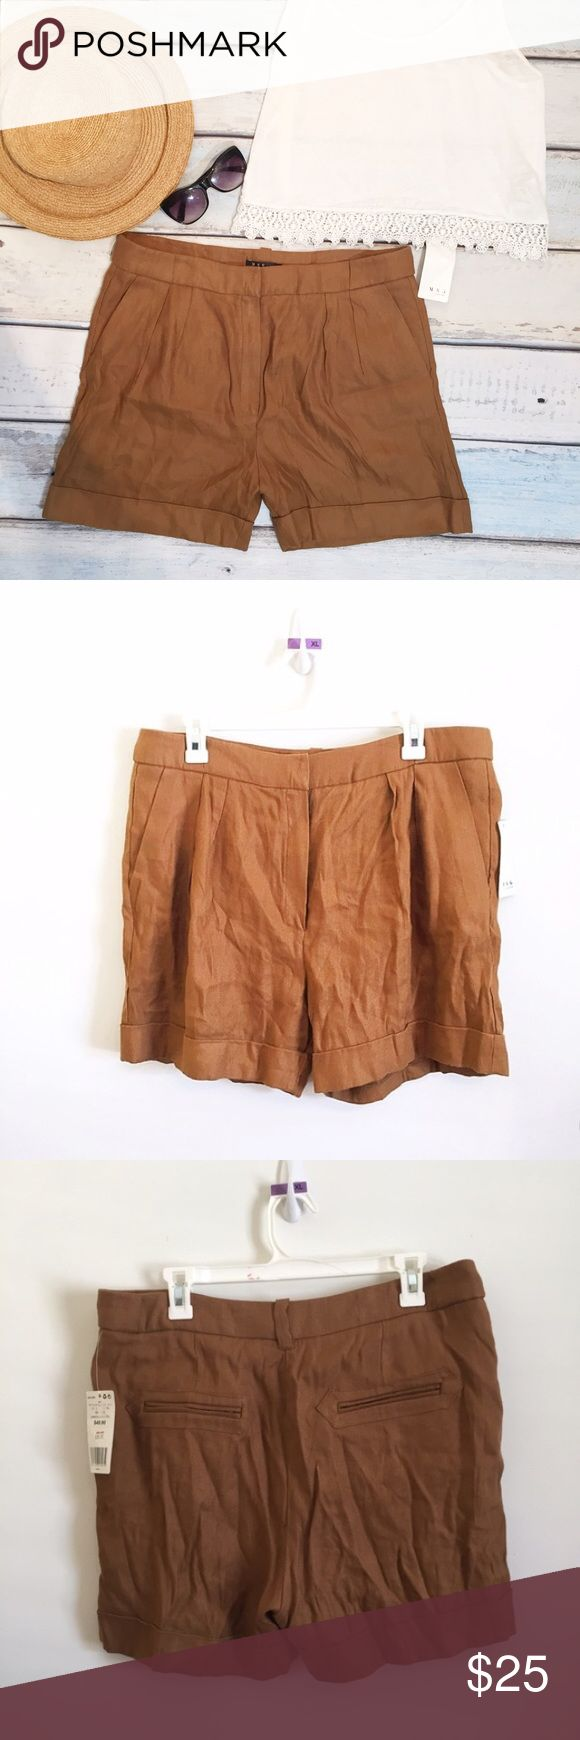 "NWT MNG Mango Paper Bag Linen Shorts New with tags. MNG by Mango brown ""paper bag"" style high waisted shorts. They have a dual hook and eye and button closure and the button is a replacement but you can't tell. Size XL. 50% Linen, 50% viscose. Measures 17.5"" flat at waist, 13.5"" front rise, and 4"" inseam. #nwt #new #mng #mango #brown #shorts #xl #knit #safarishorts #safari #punkydoodle  No modeling Smoke free home  I do discount bundles Mango Shorts"